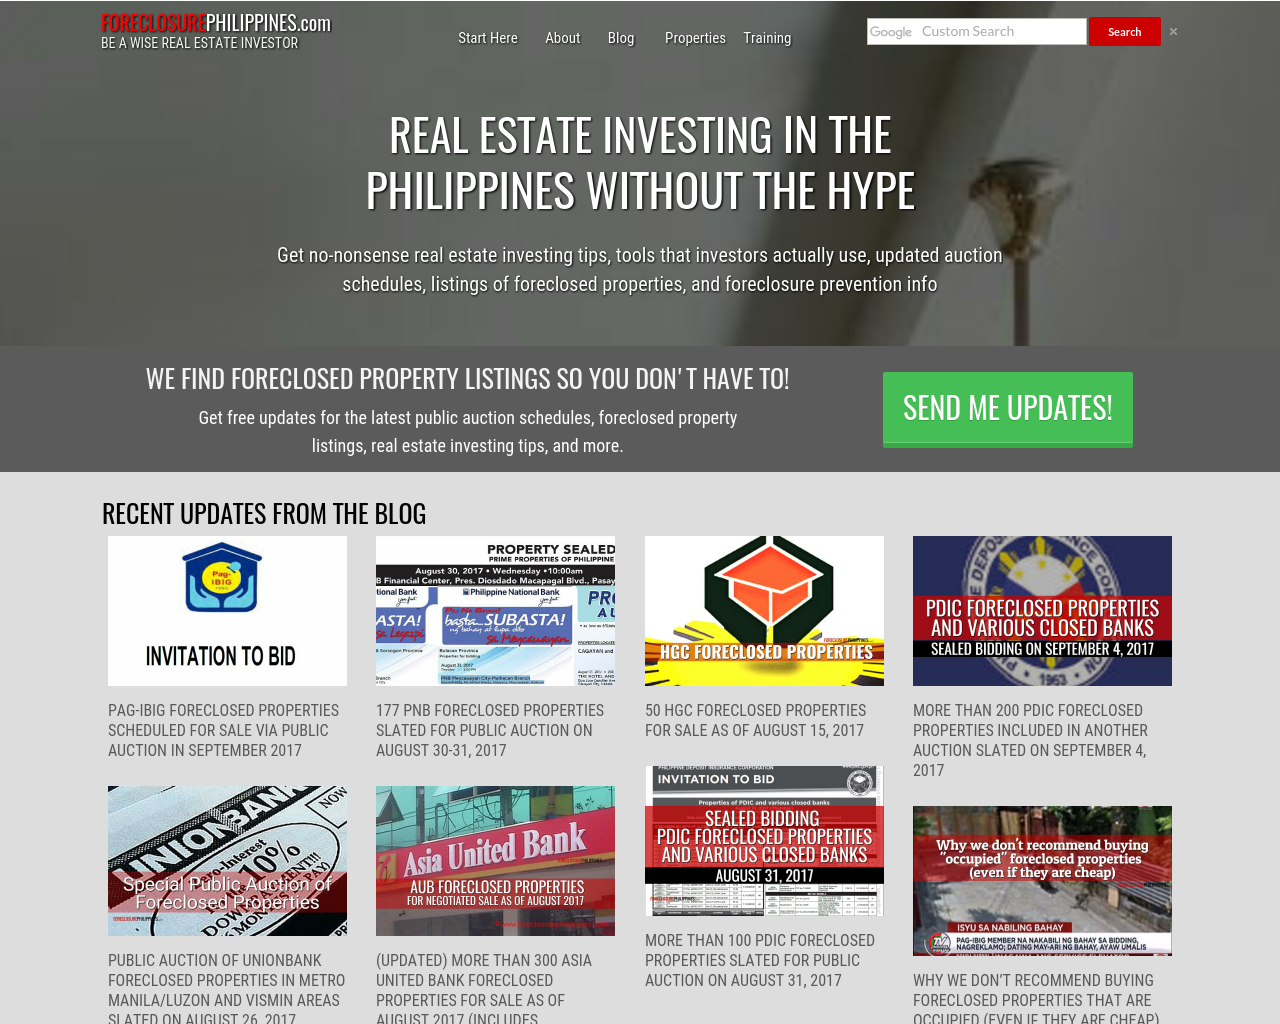 Foreclosure-Philippines-Advertising-Reviews-Pricing